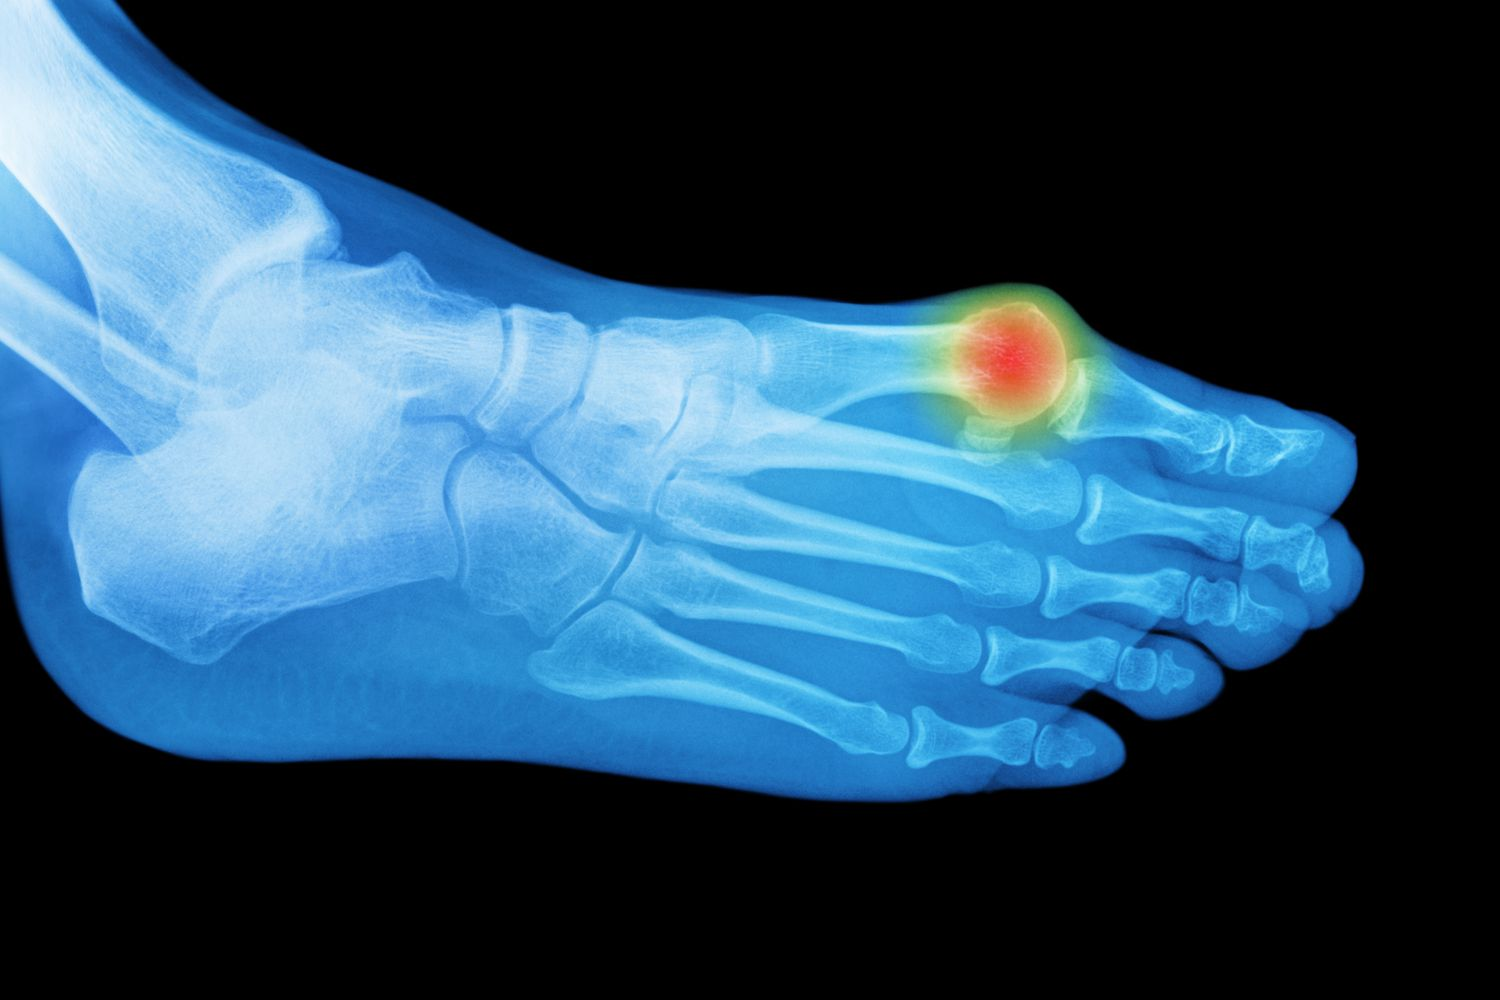 A bunion seen with hallux limitus in X-ray